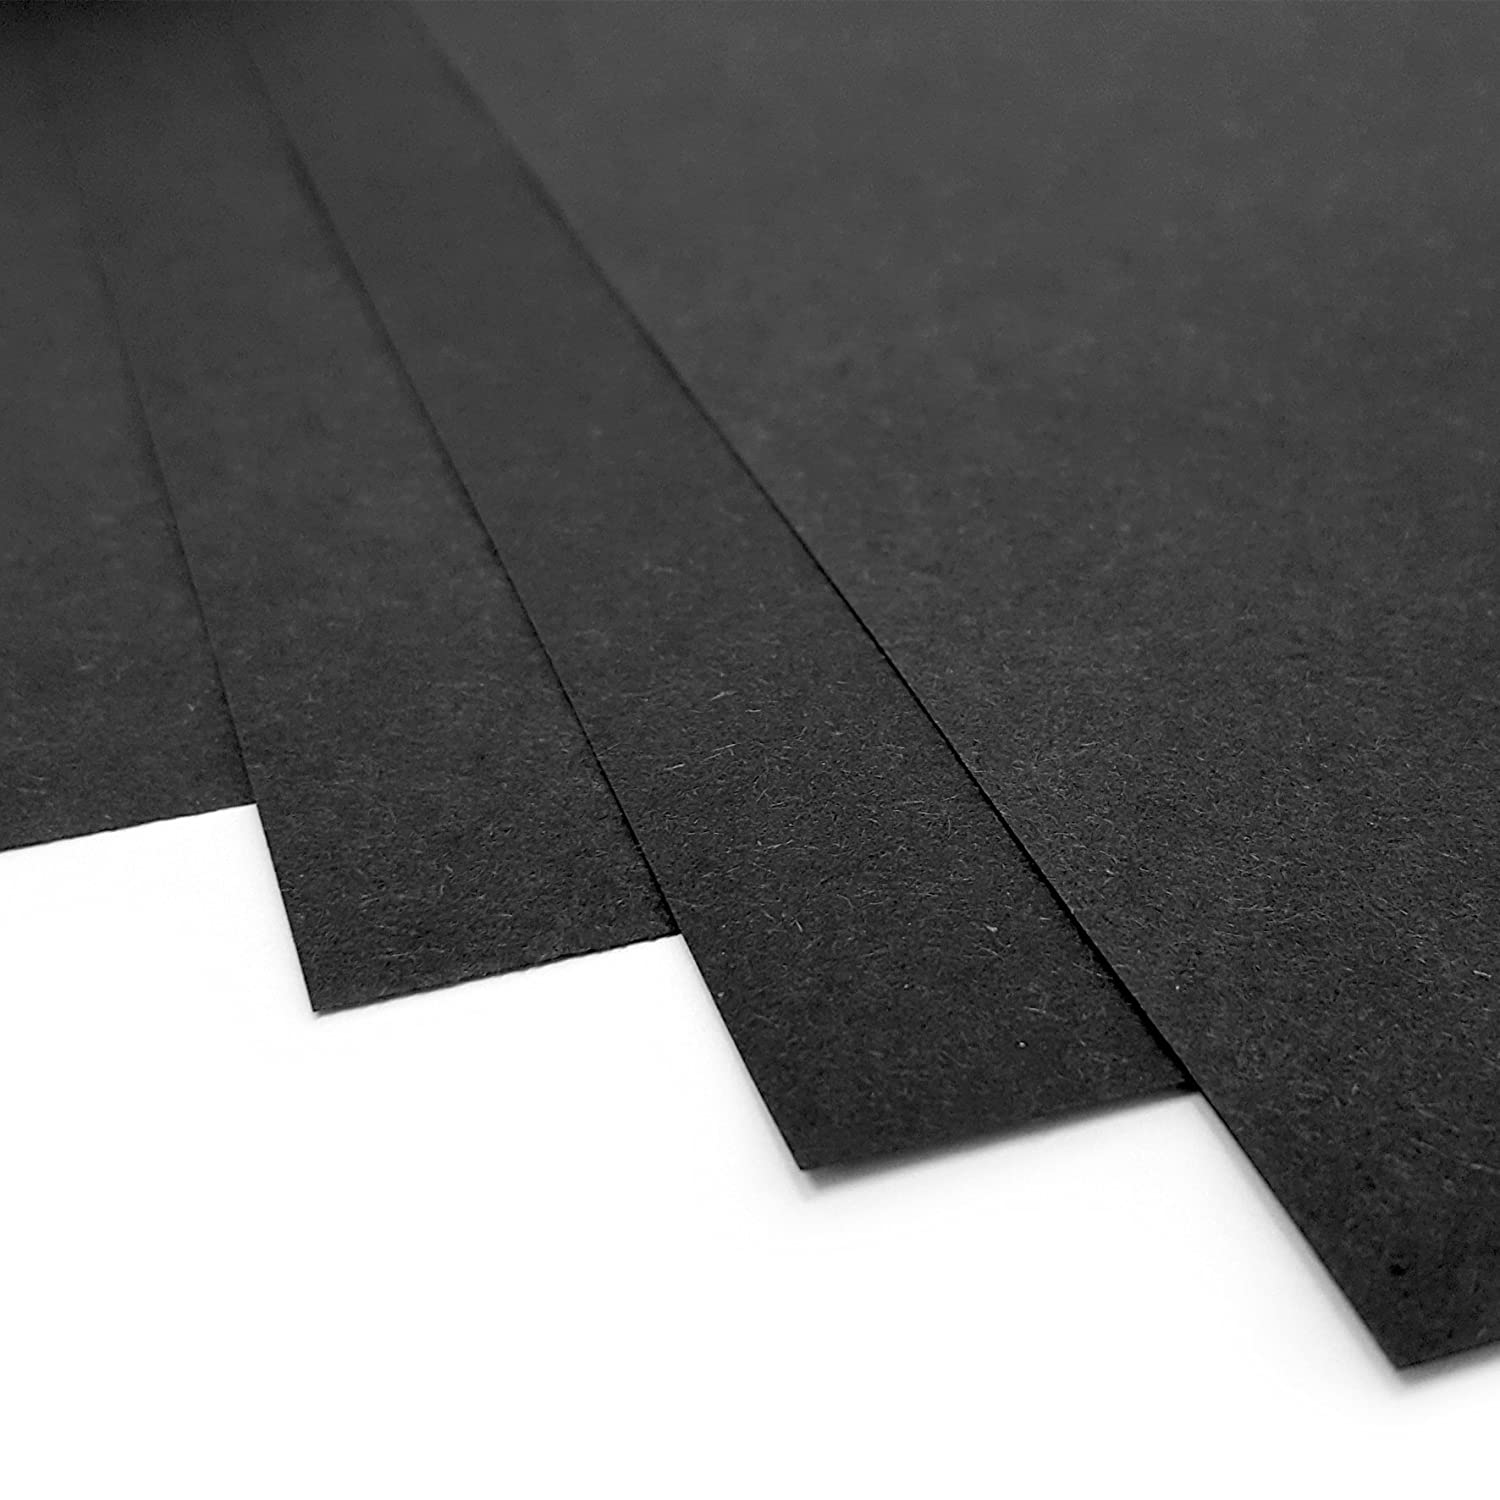 Made in the UK by IVY Stationery 100gsm 50 x Sheets 21004 Black Pages Sugar Paper A3